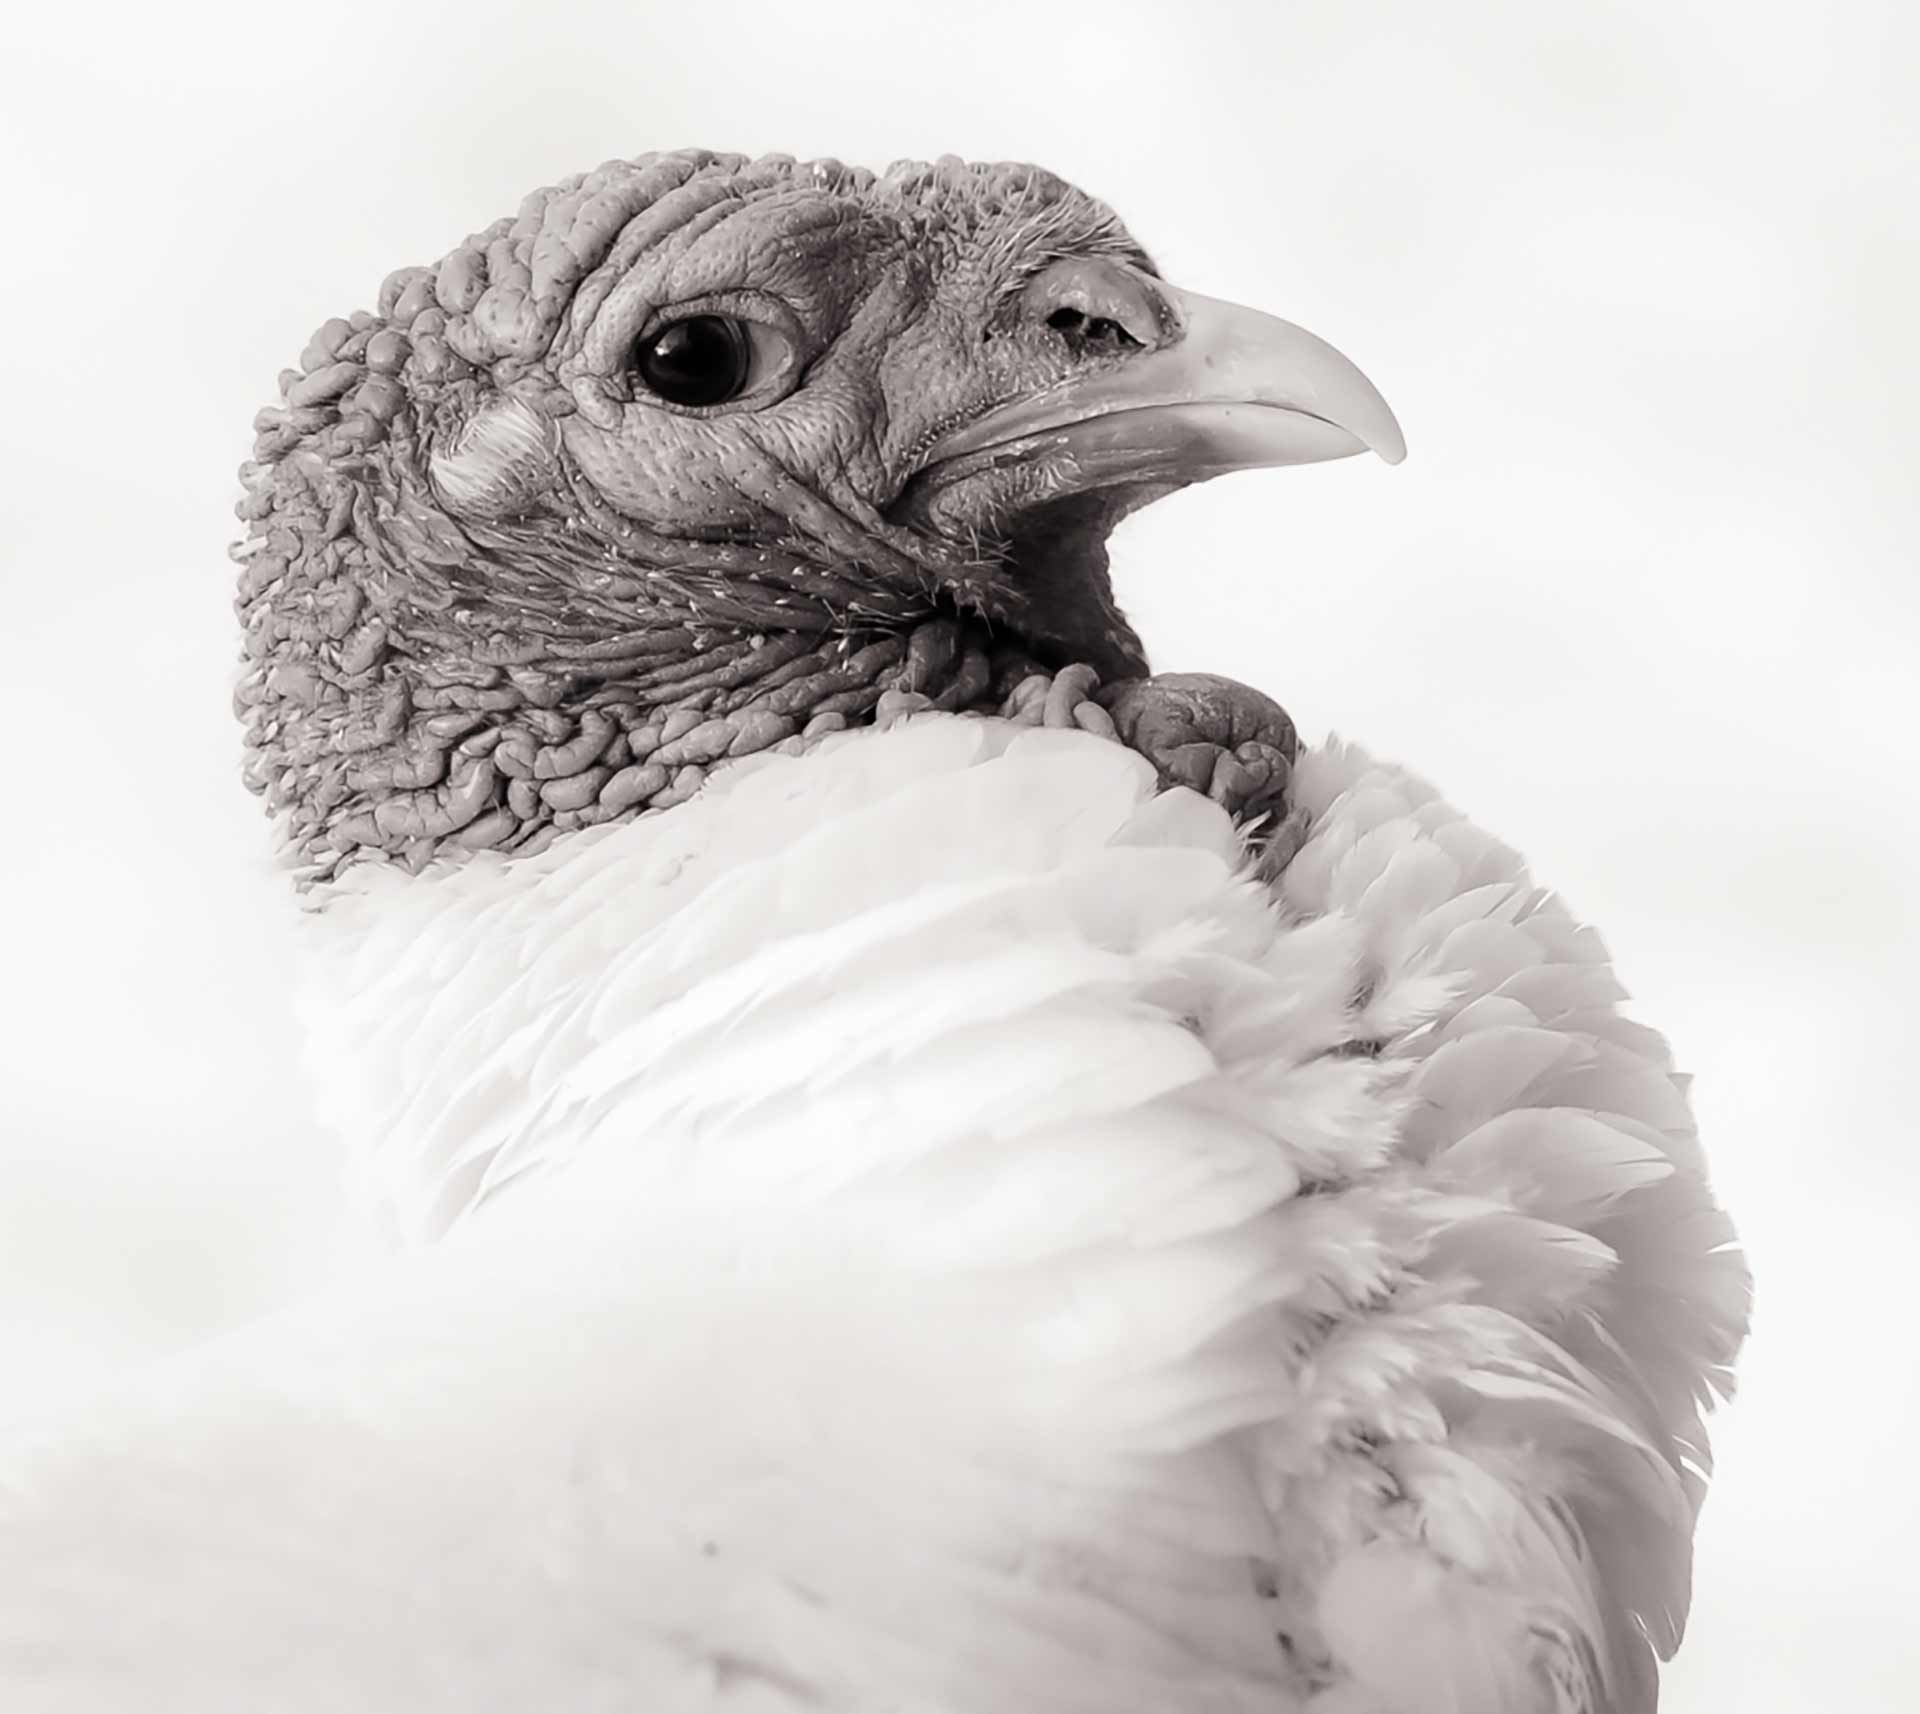 A profile picture of Boydsten, the turkey.